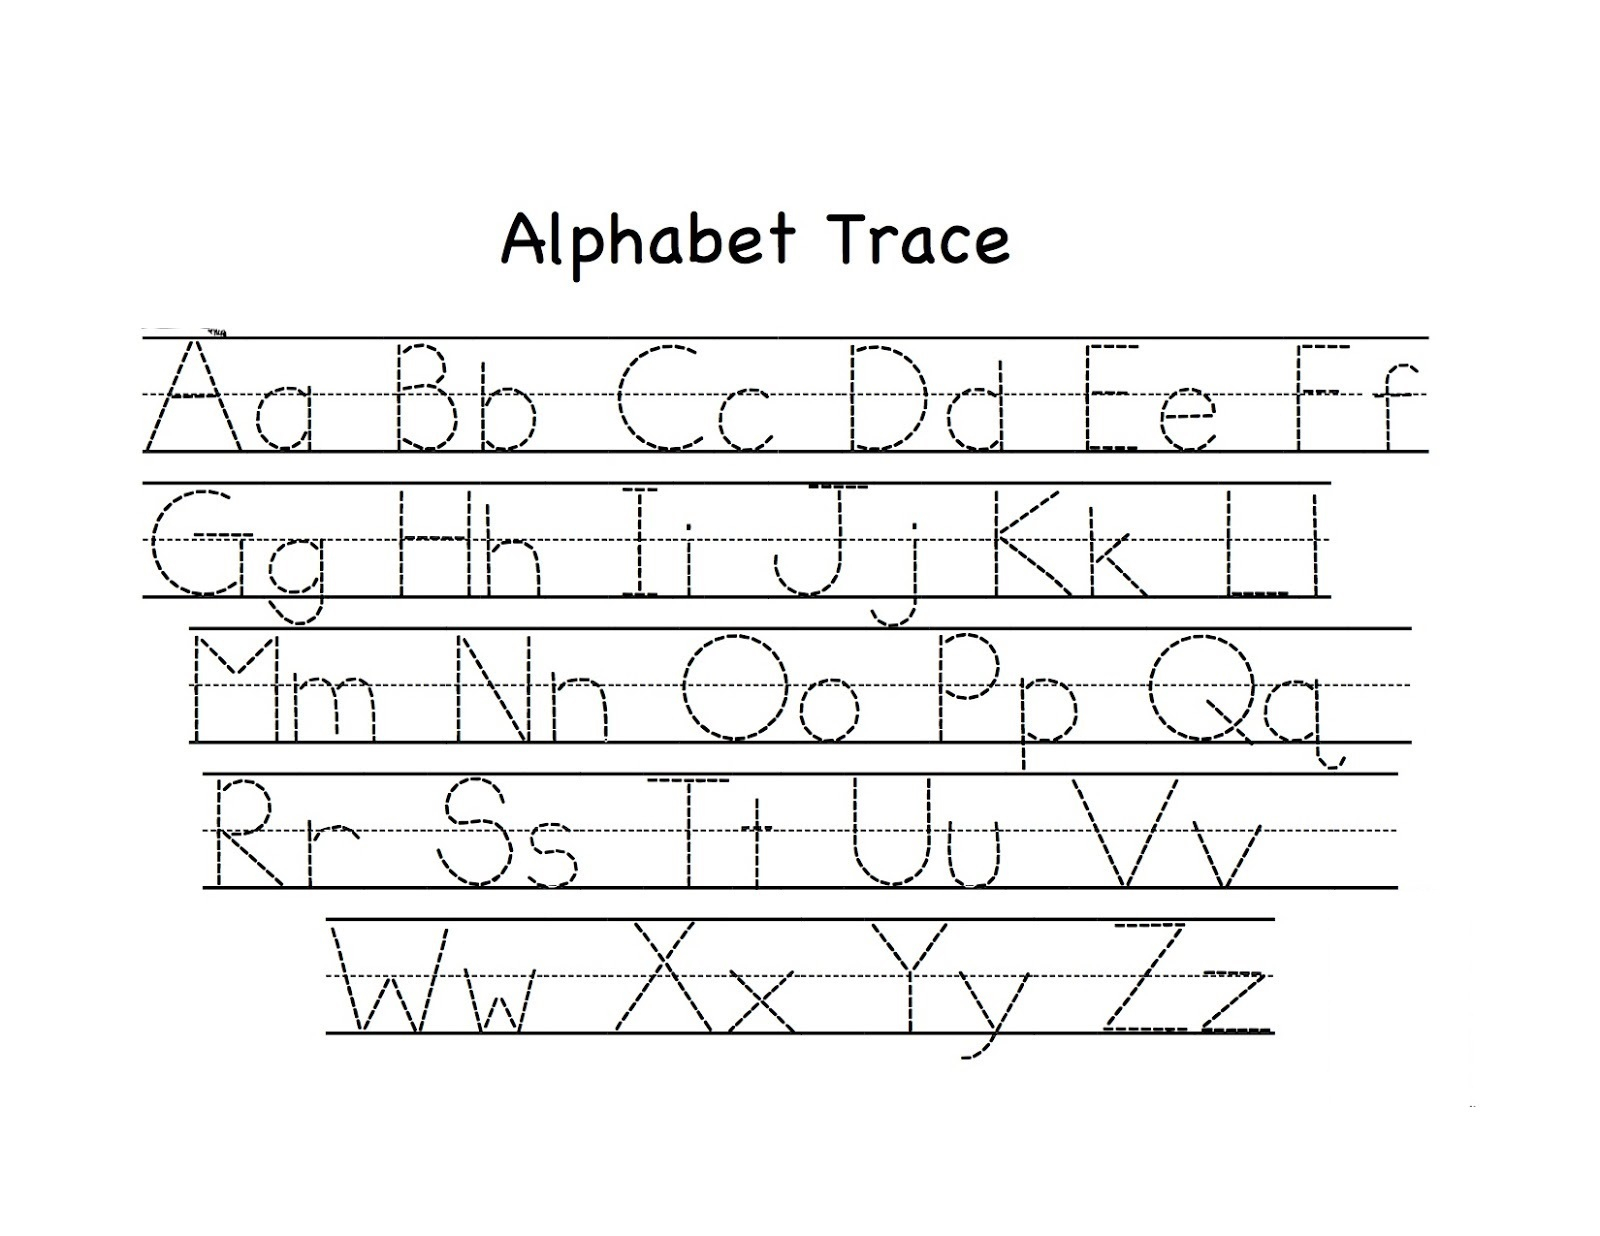 Preschool Tracing Worksheets - Best Coloring Pages For Kids intended for Alphabet Tracing Pages